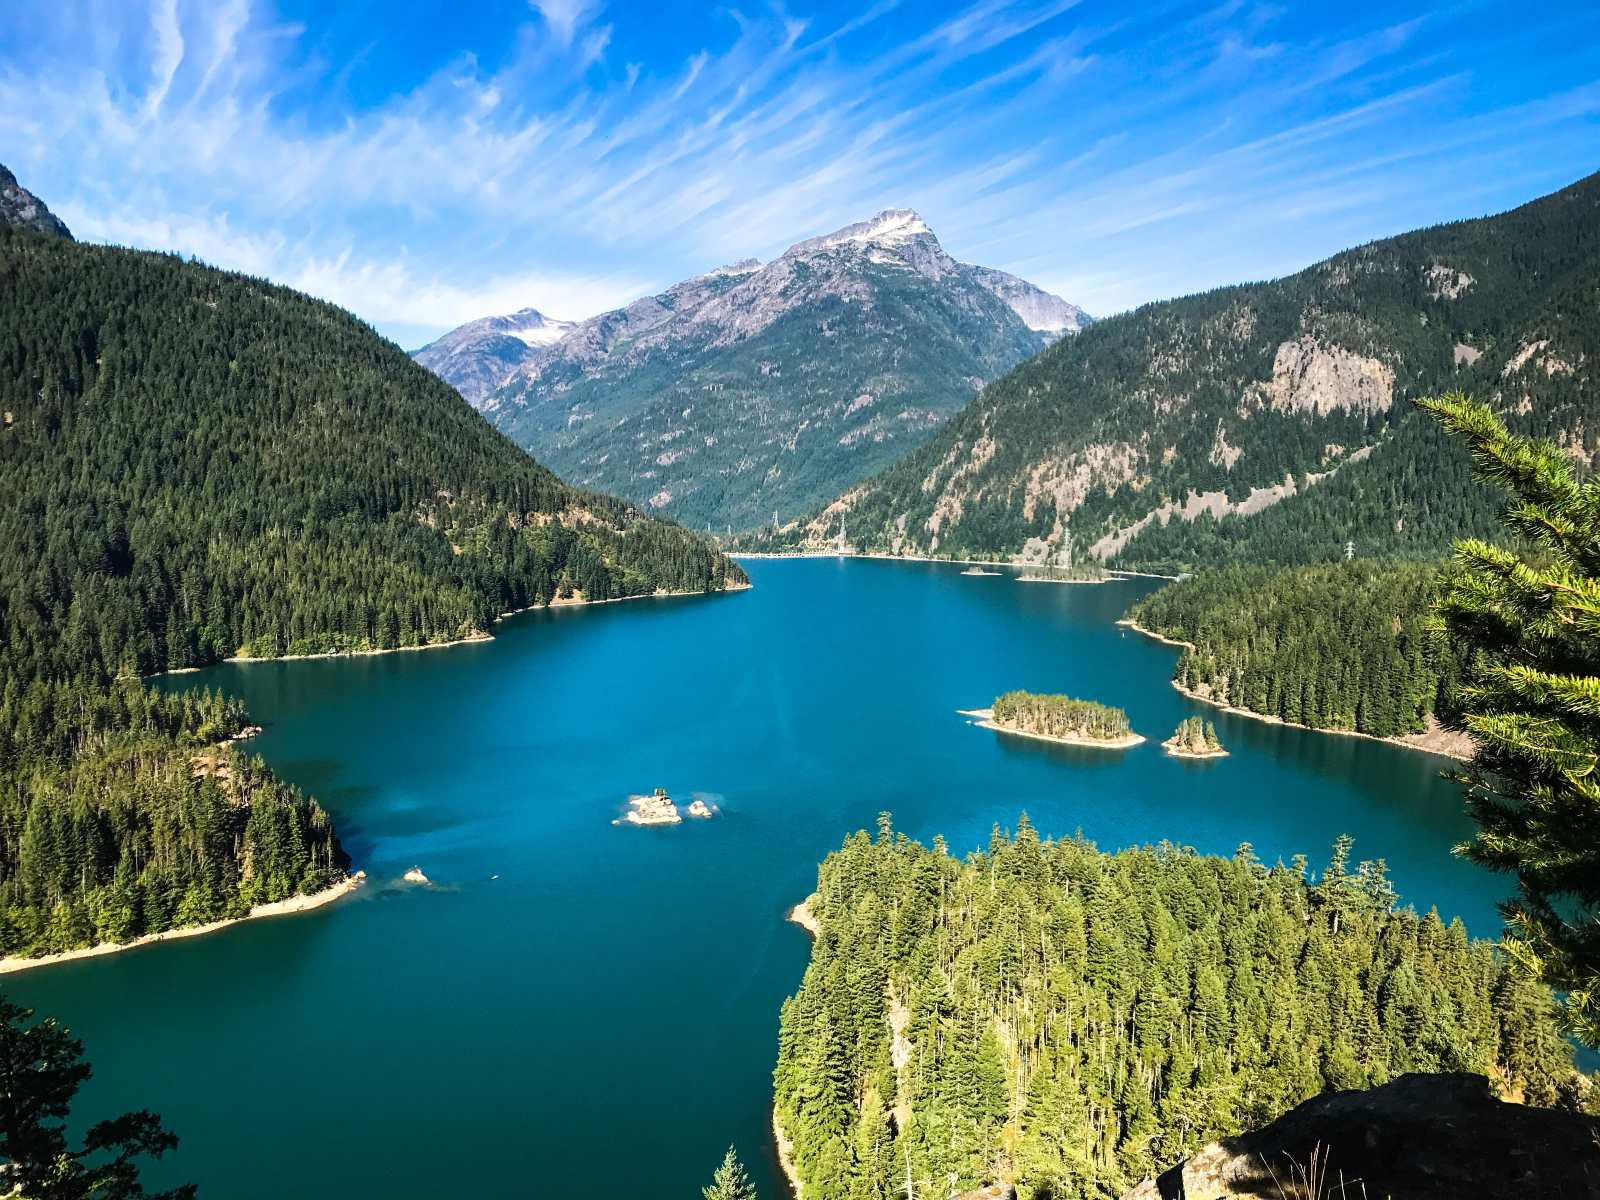 Camping in North Cascades National Park: The 10 Best Spots